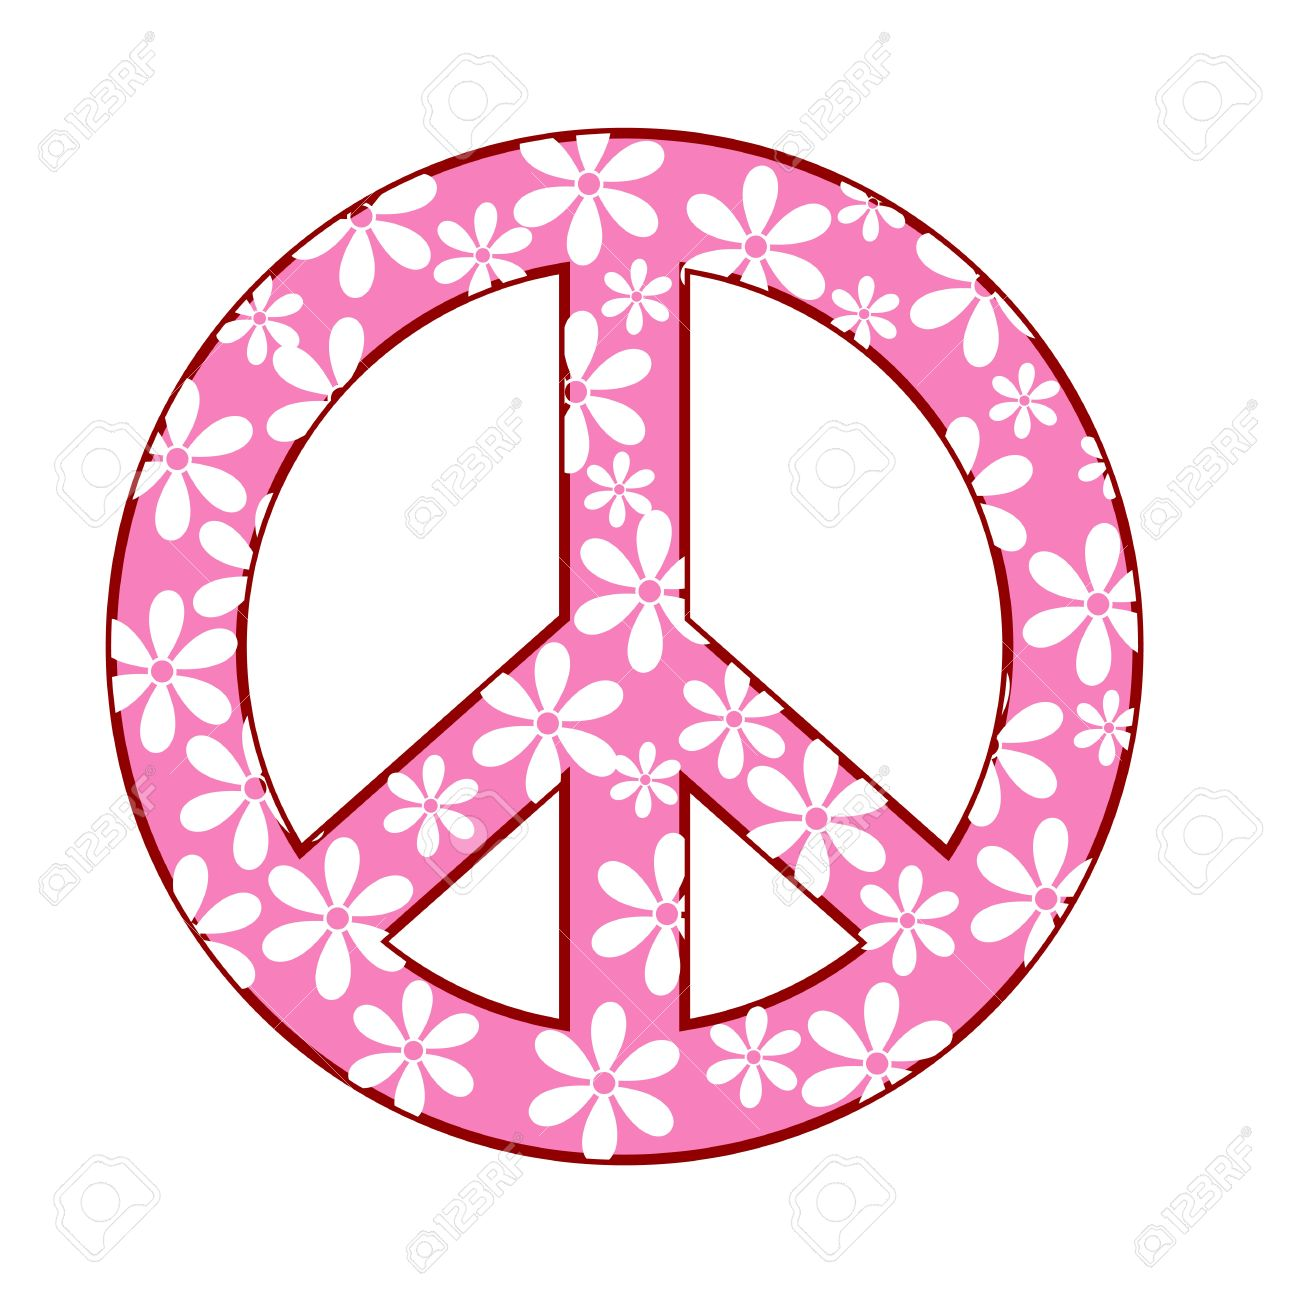 Peace Symbol Images Free Download Best Peace Symbol Images On